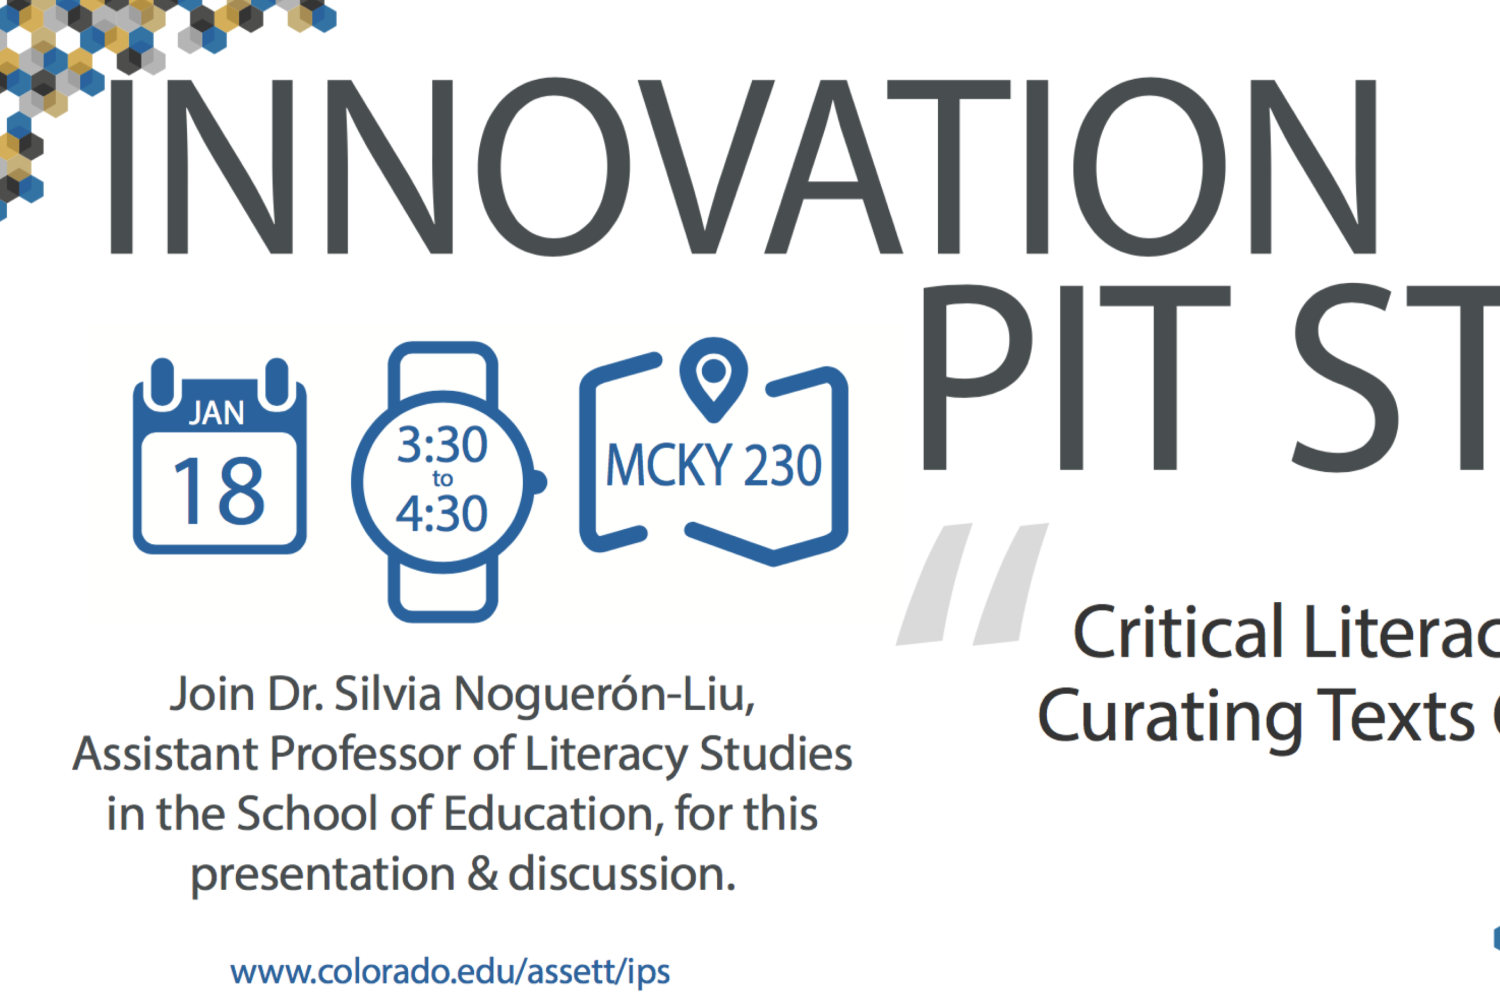 Innovation Pit Stop, Critical Literacy for Curating Texts Online, Jan 18th 3:30-4:30 in Mcky 230